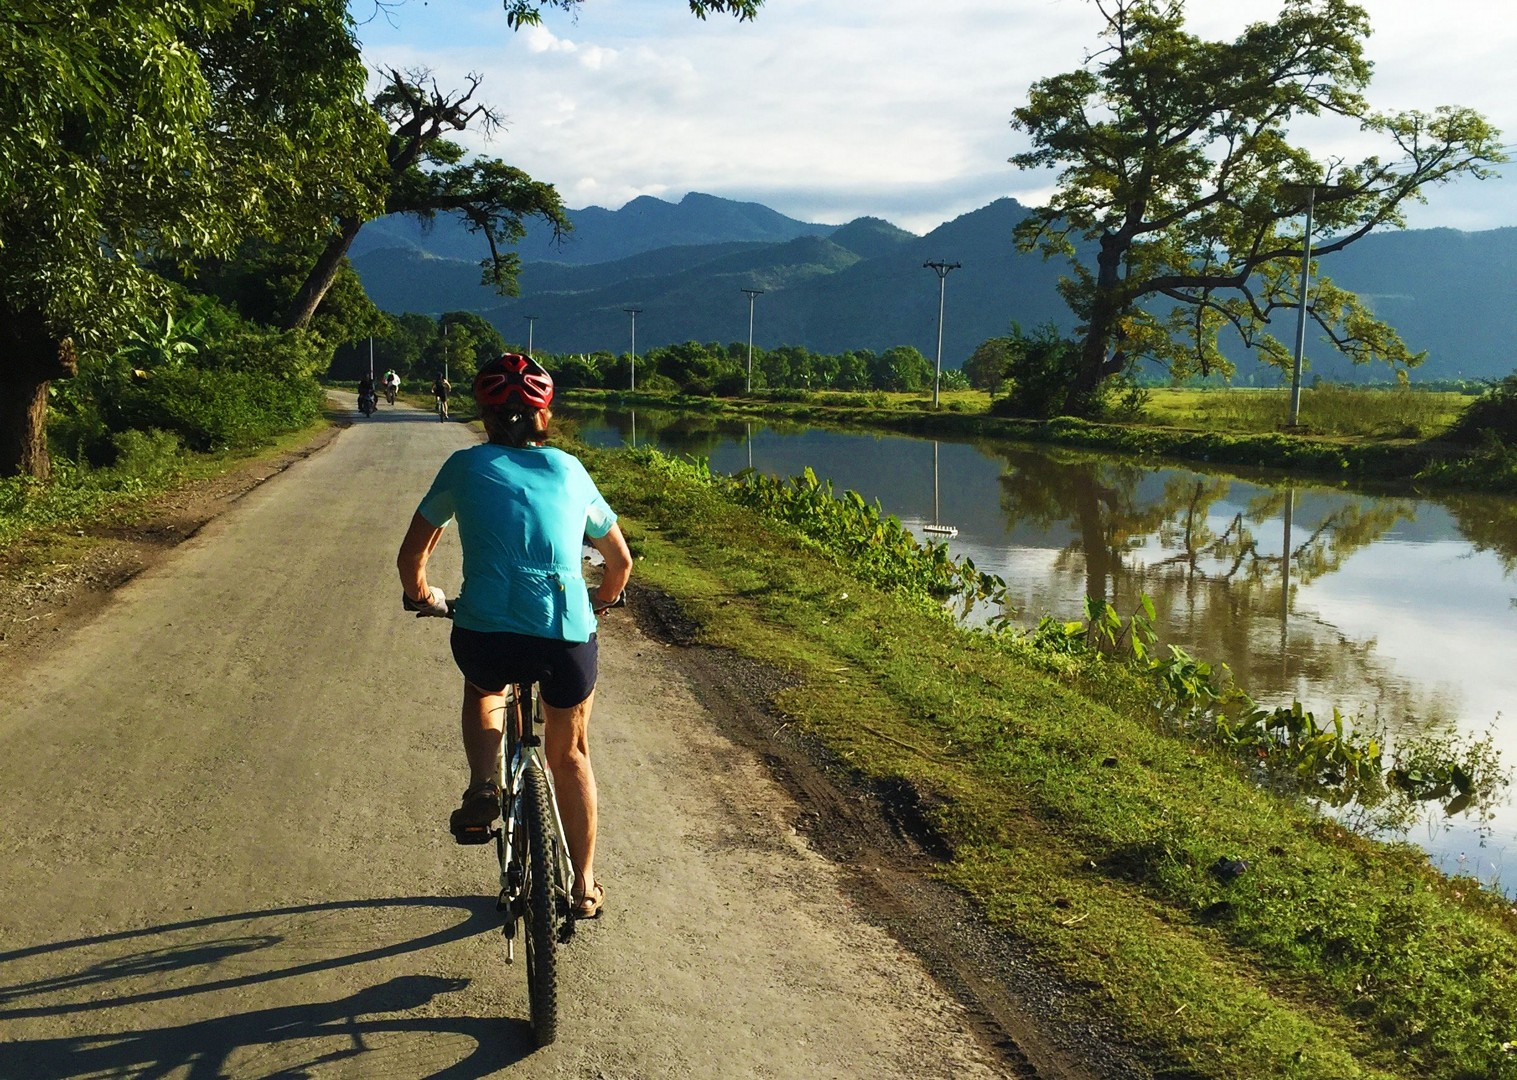 breathtaking-scenery-group-cycling-through-burma.jpg - Burma - Bagan and Beyond - Cycling Adventures